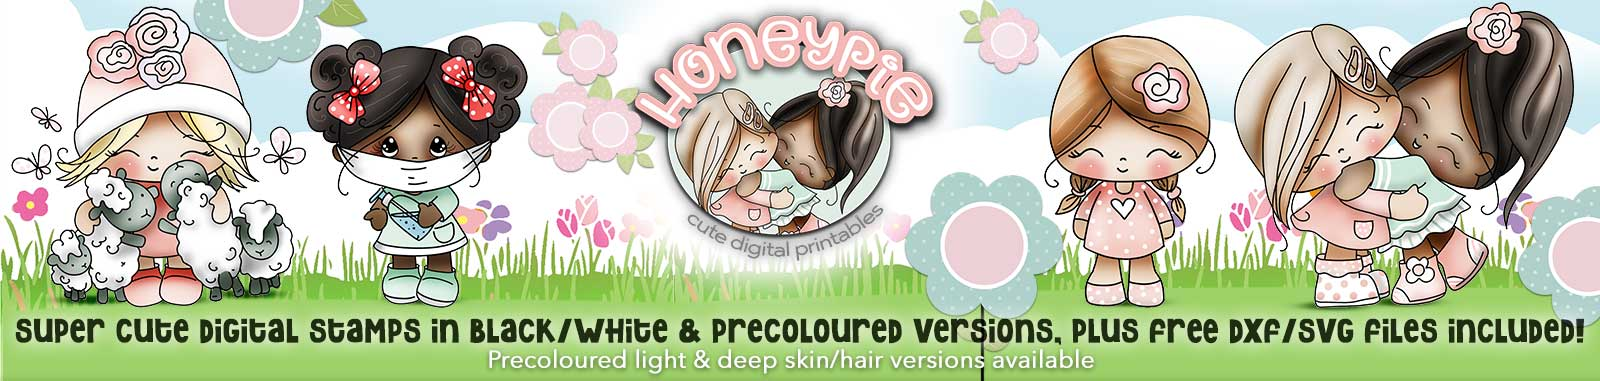 Honeypie cute girl digital printable download collection with free svg files